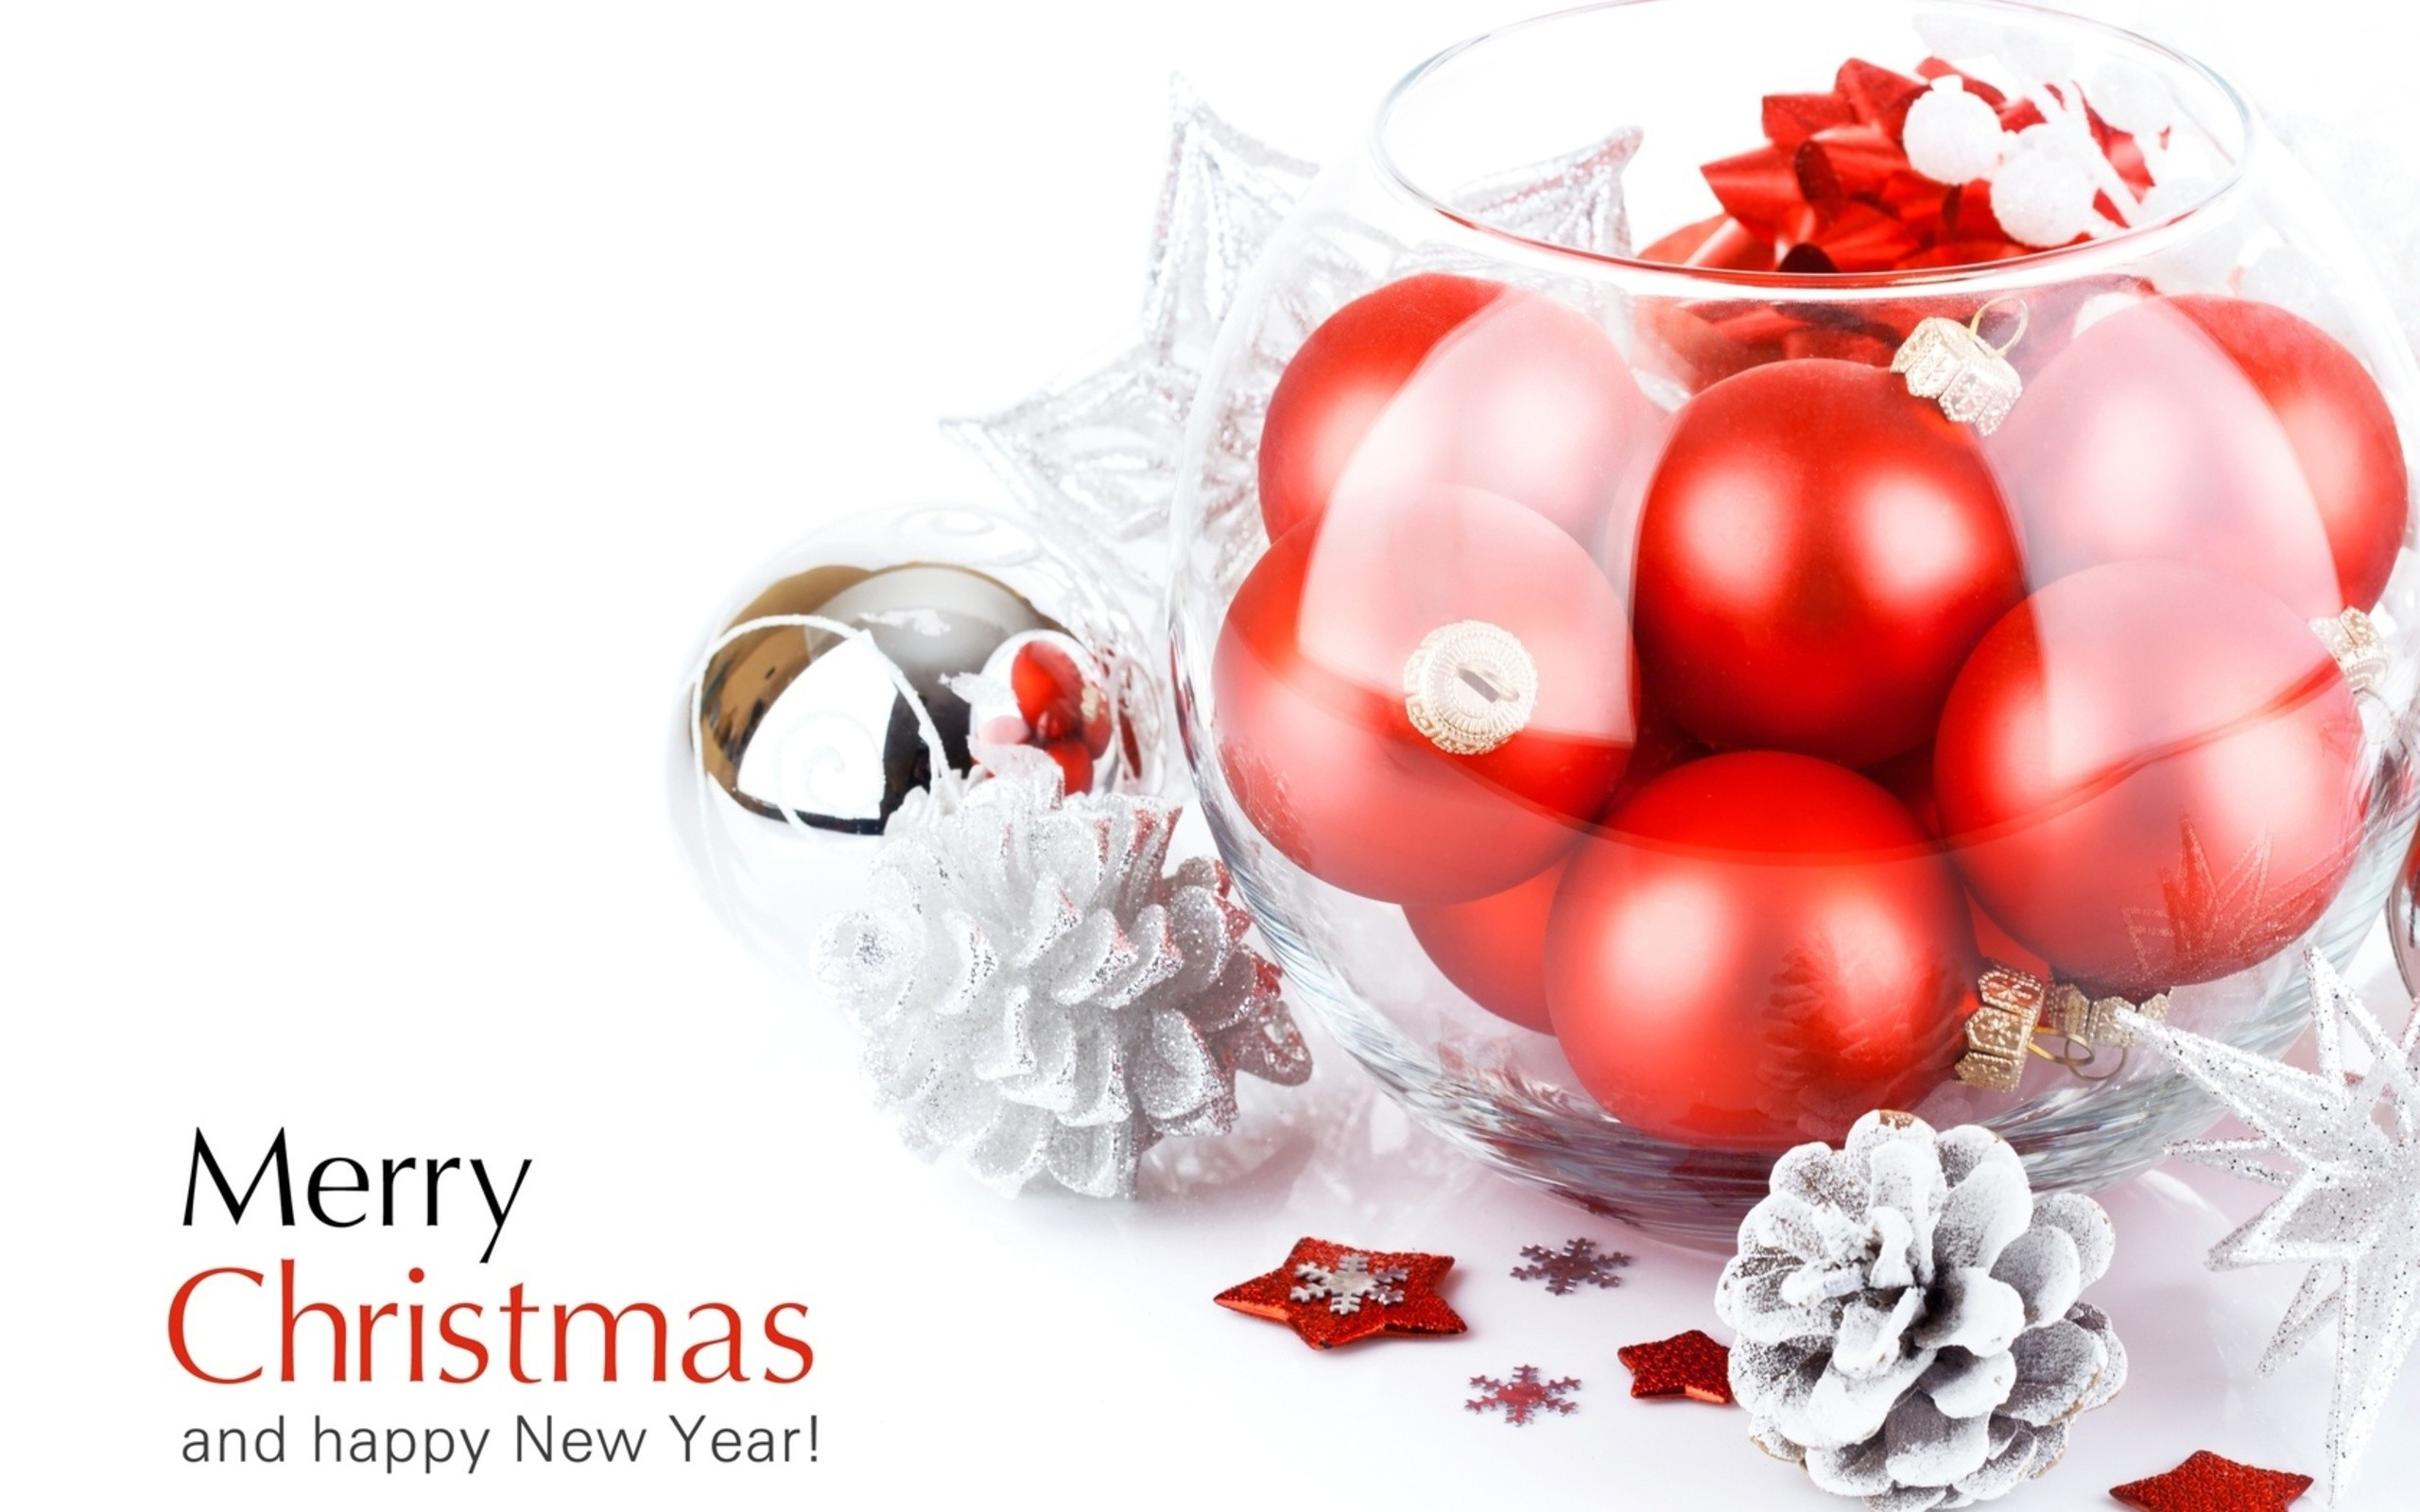 Windows New Year Wallpapers - Merry Christmas And Happy New Year With White Background , HD Wallpaper & Backgrounds